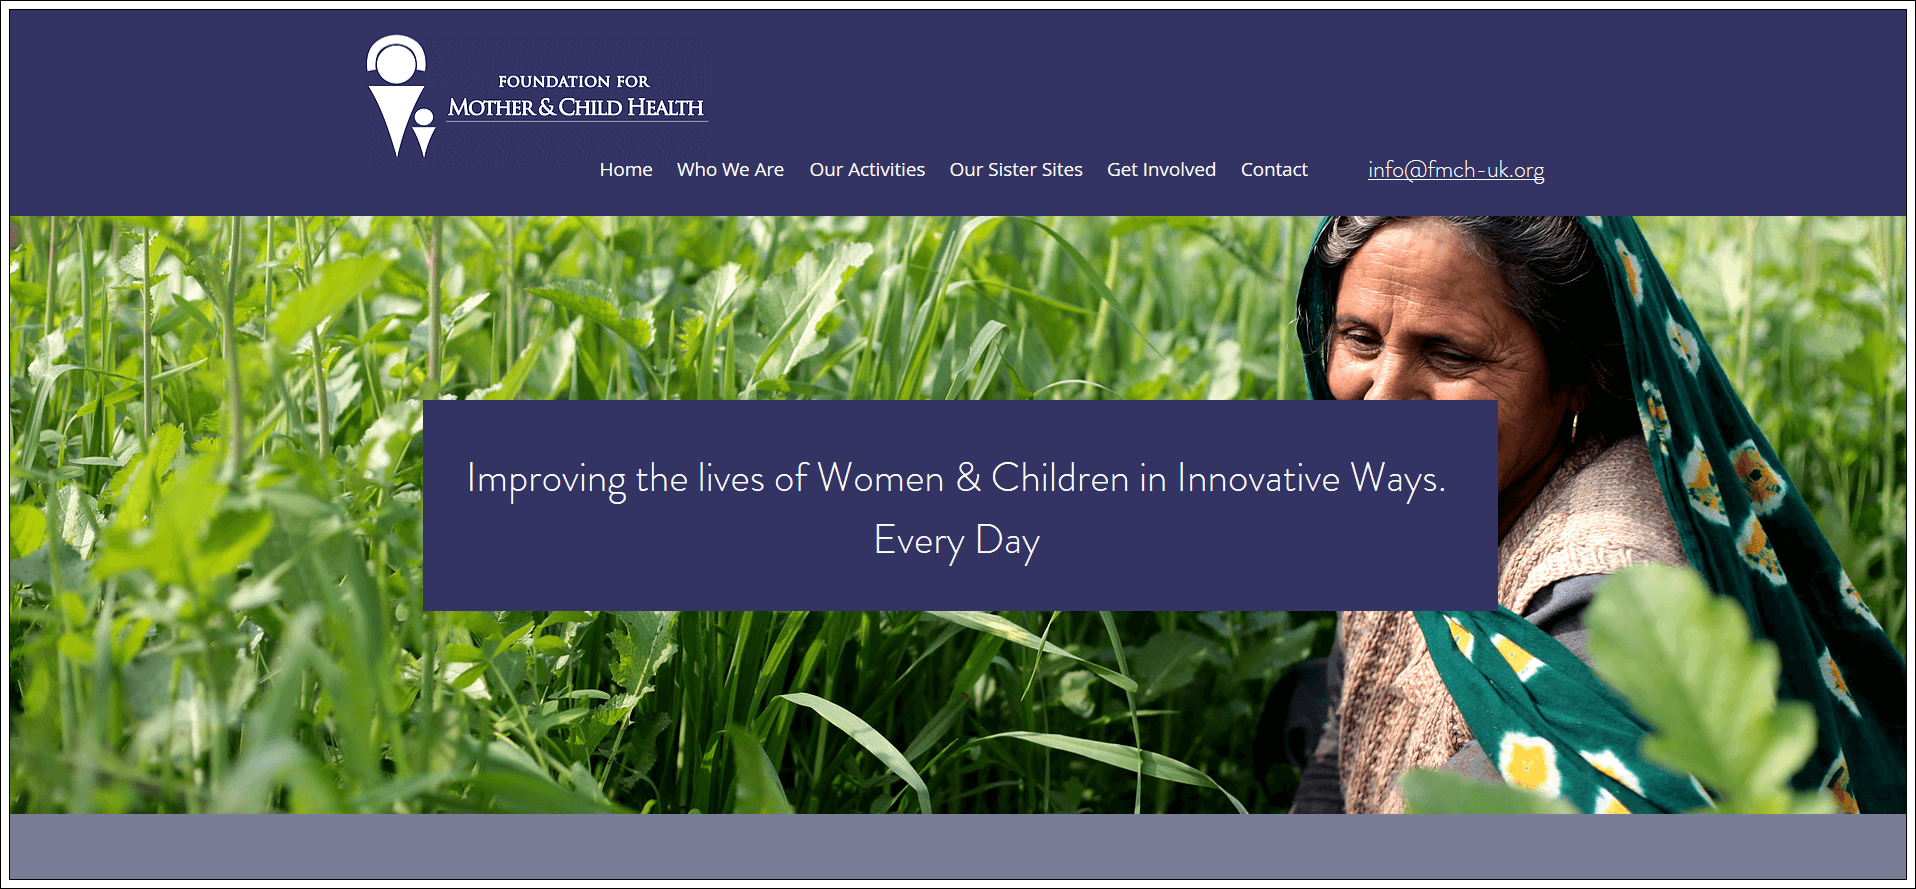 The Foundation for Mother & Child Health